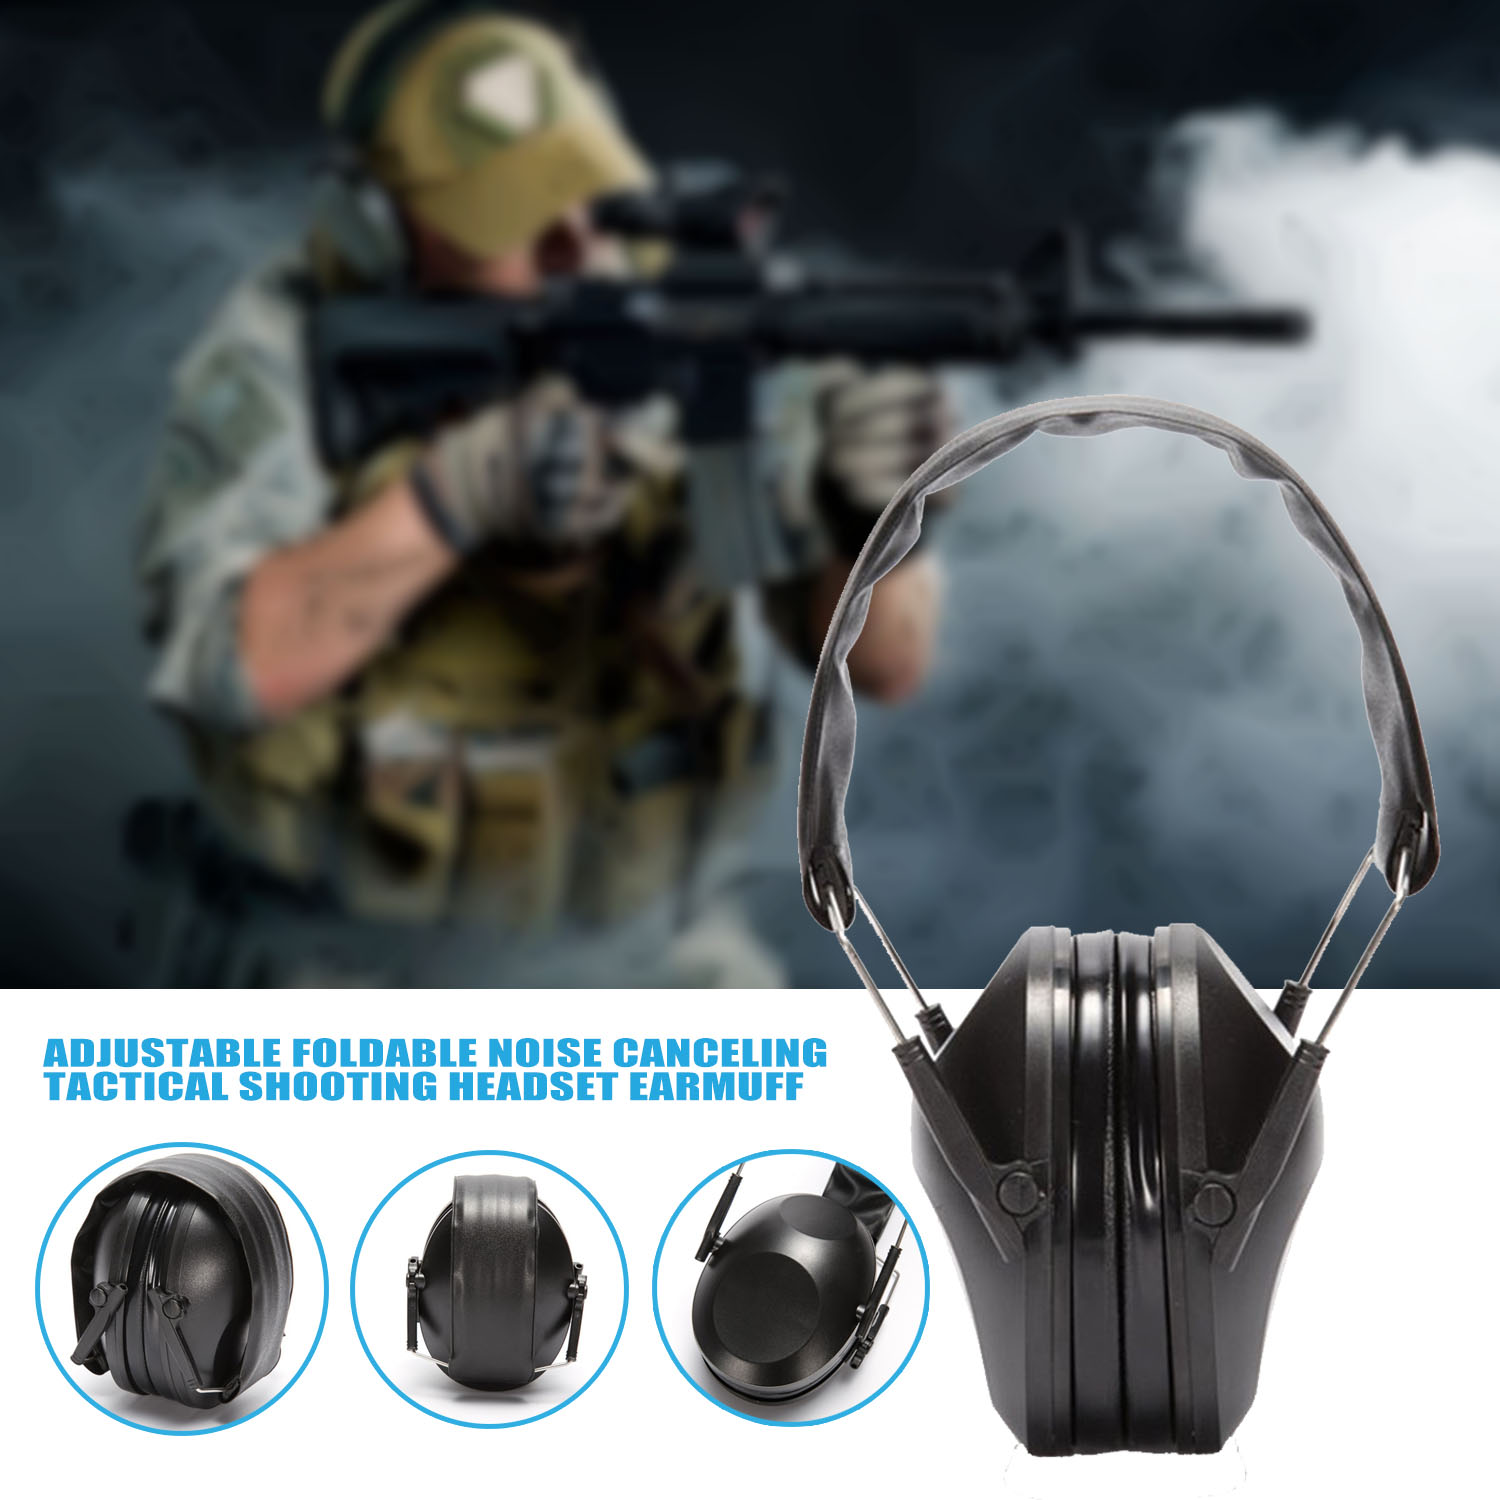 New Ear protector Tactical Shooting Earmuff Adjustable Foldable Anti Noise Snore Earplugs Soft Padded Noise Canceling Headset|Ear Protector| |  - title=